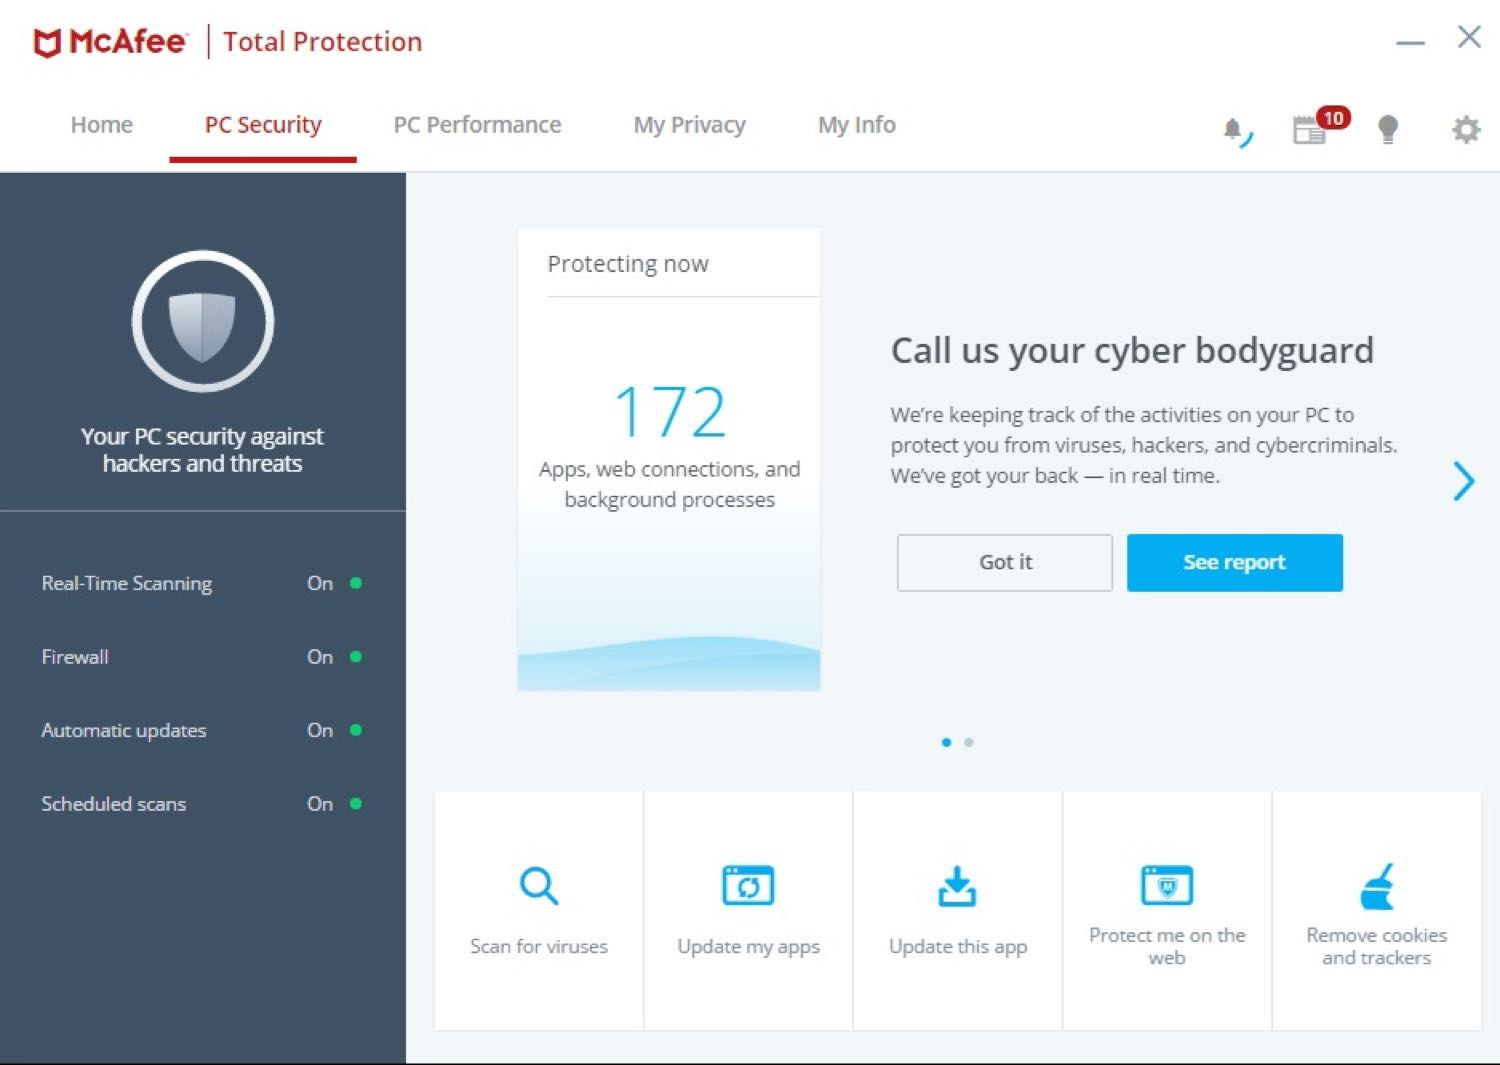 McAffe antivirus 2019 interface